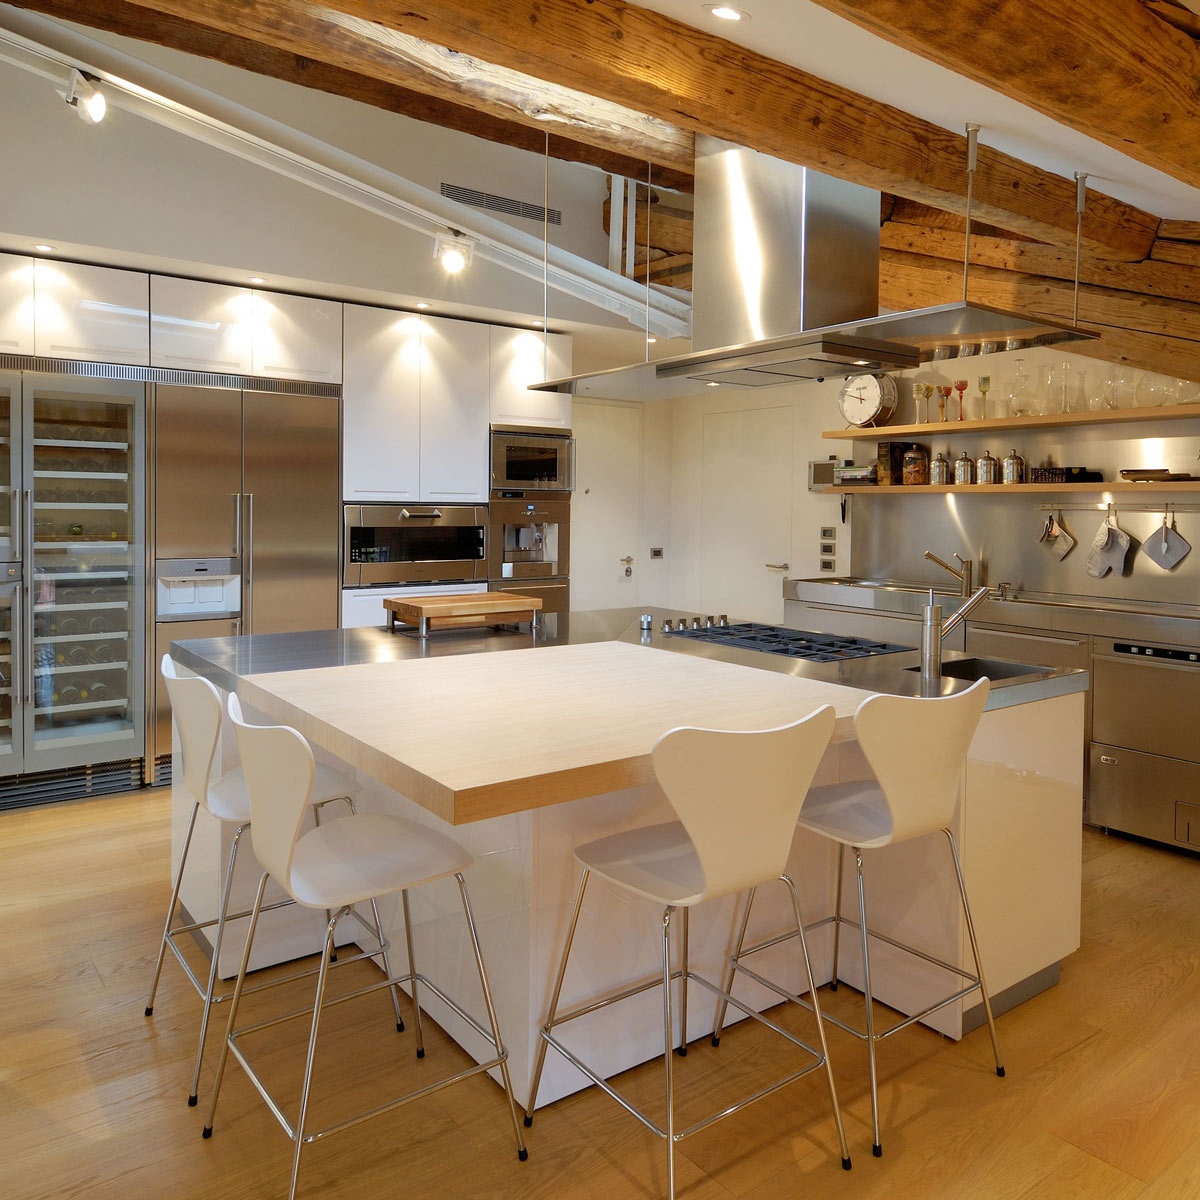 Italian Kitchen Island | Stainless Steel Units Kitchen Island Penthouse In Udine Italy By